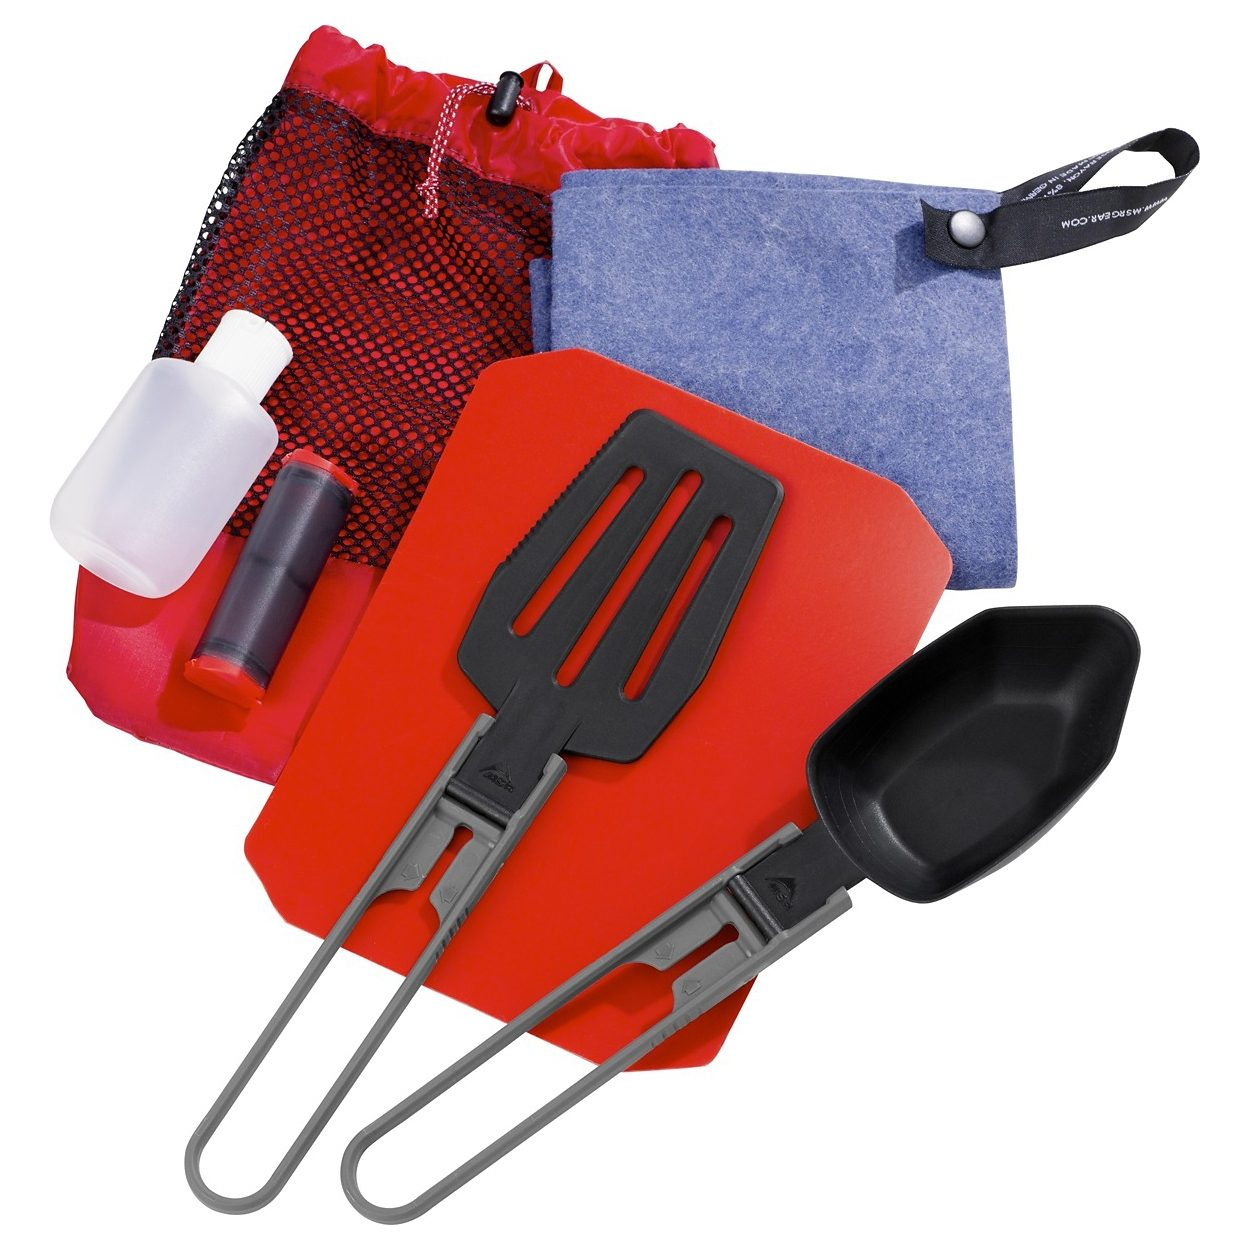 MSR Camping-Geschirr »Ultralight Kitchen Set«